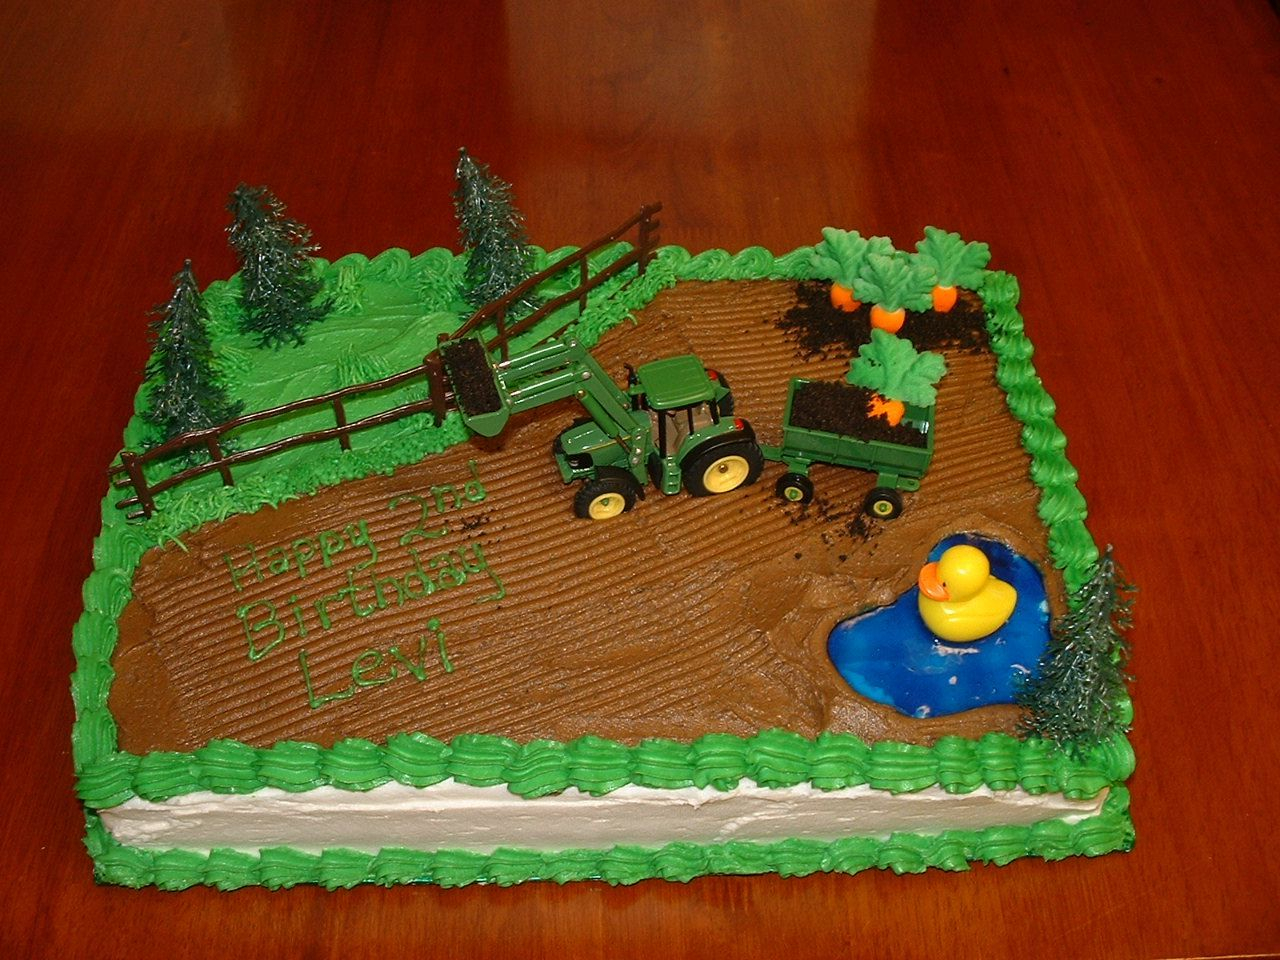 960 In 30 Awesome Photo Of Tractor Birthday Cakes